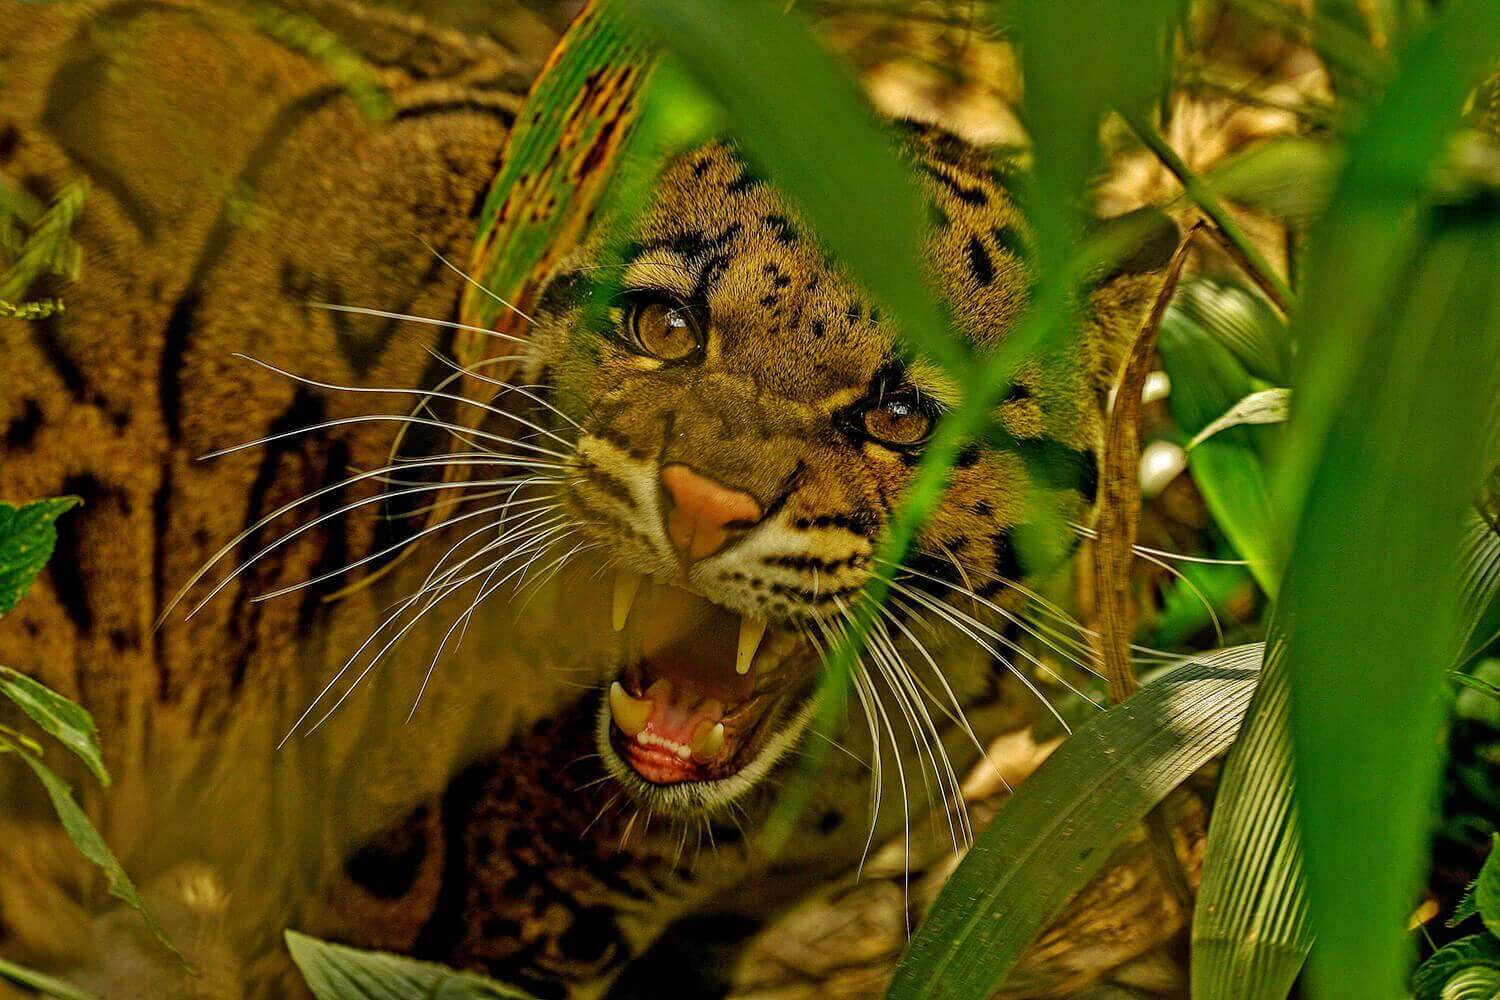 Clouded future for the Clouded Leopard